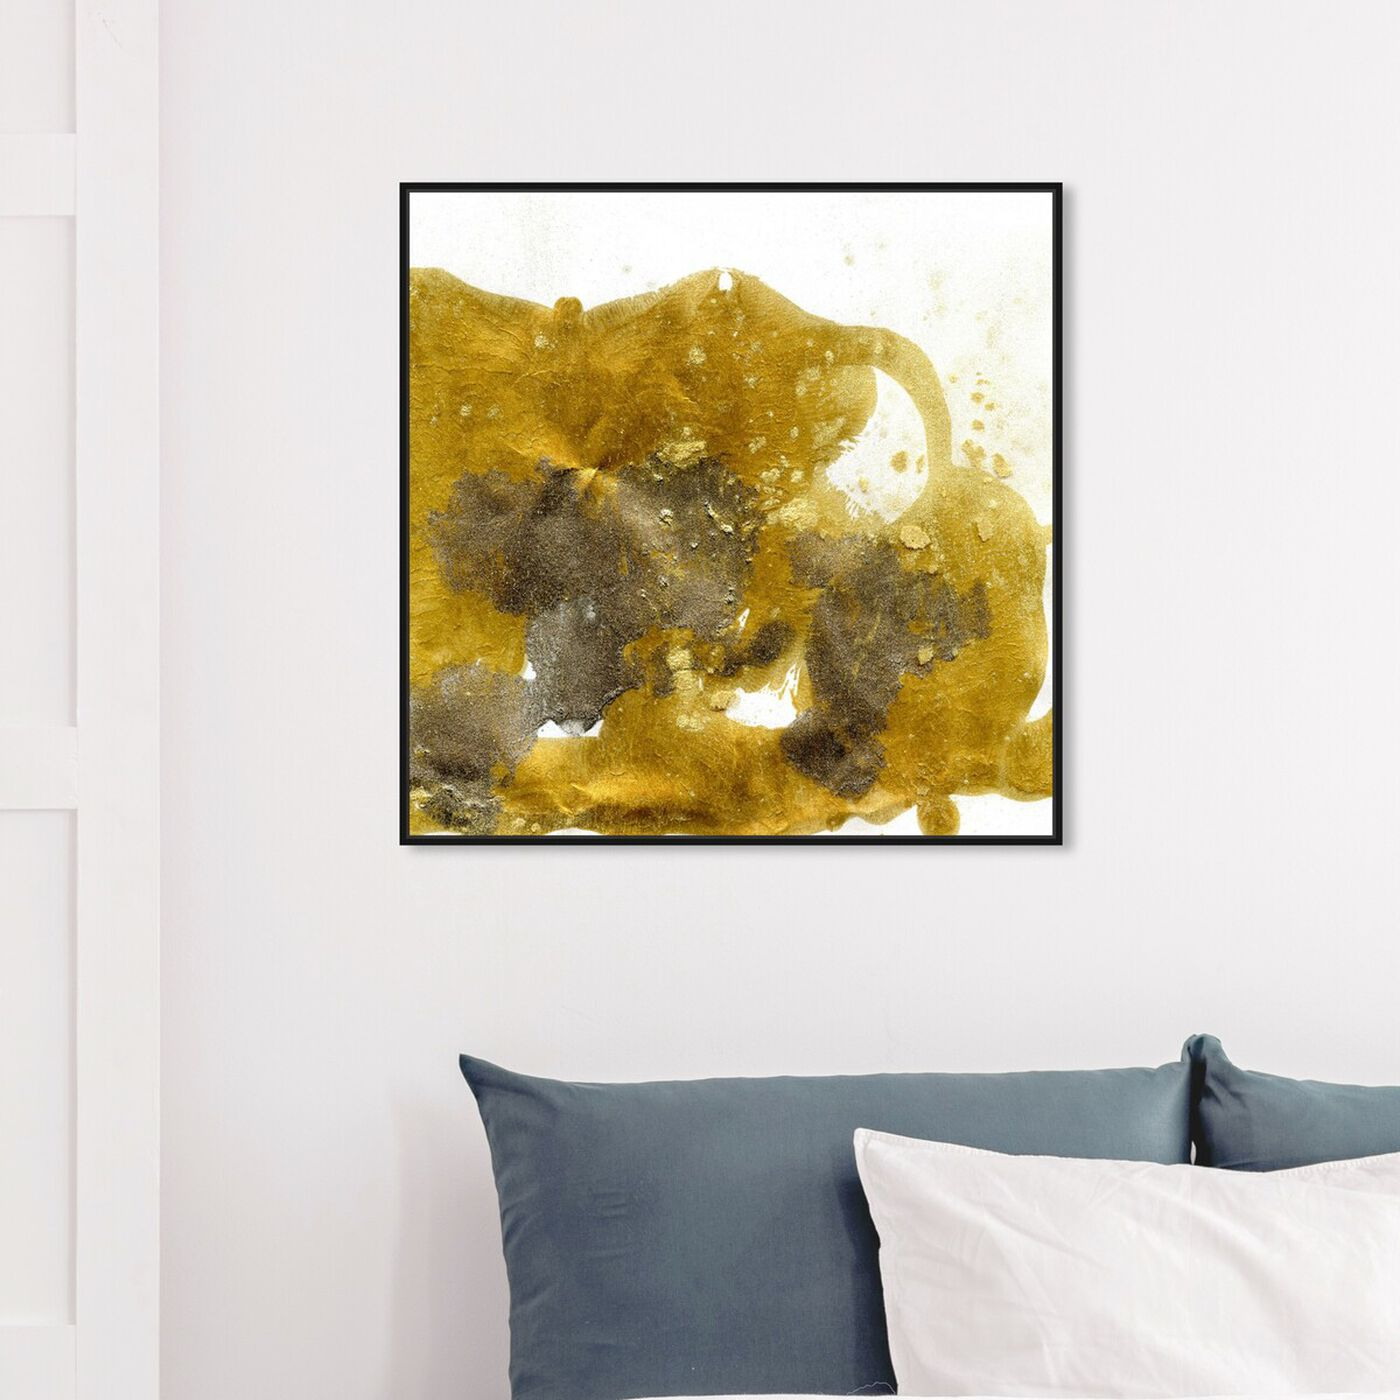 Hanging view of Gold Dust - Signature Collection featuring abstract and textures art.